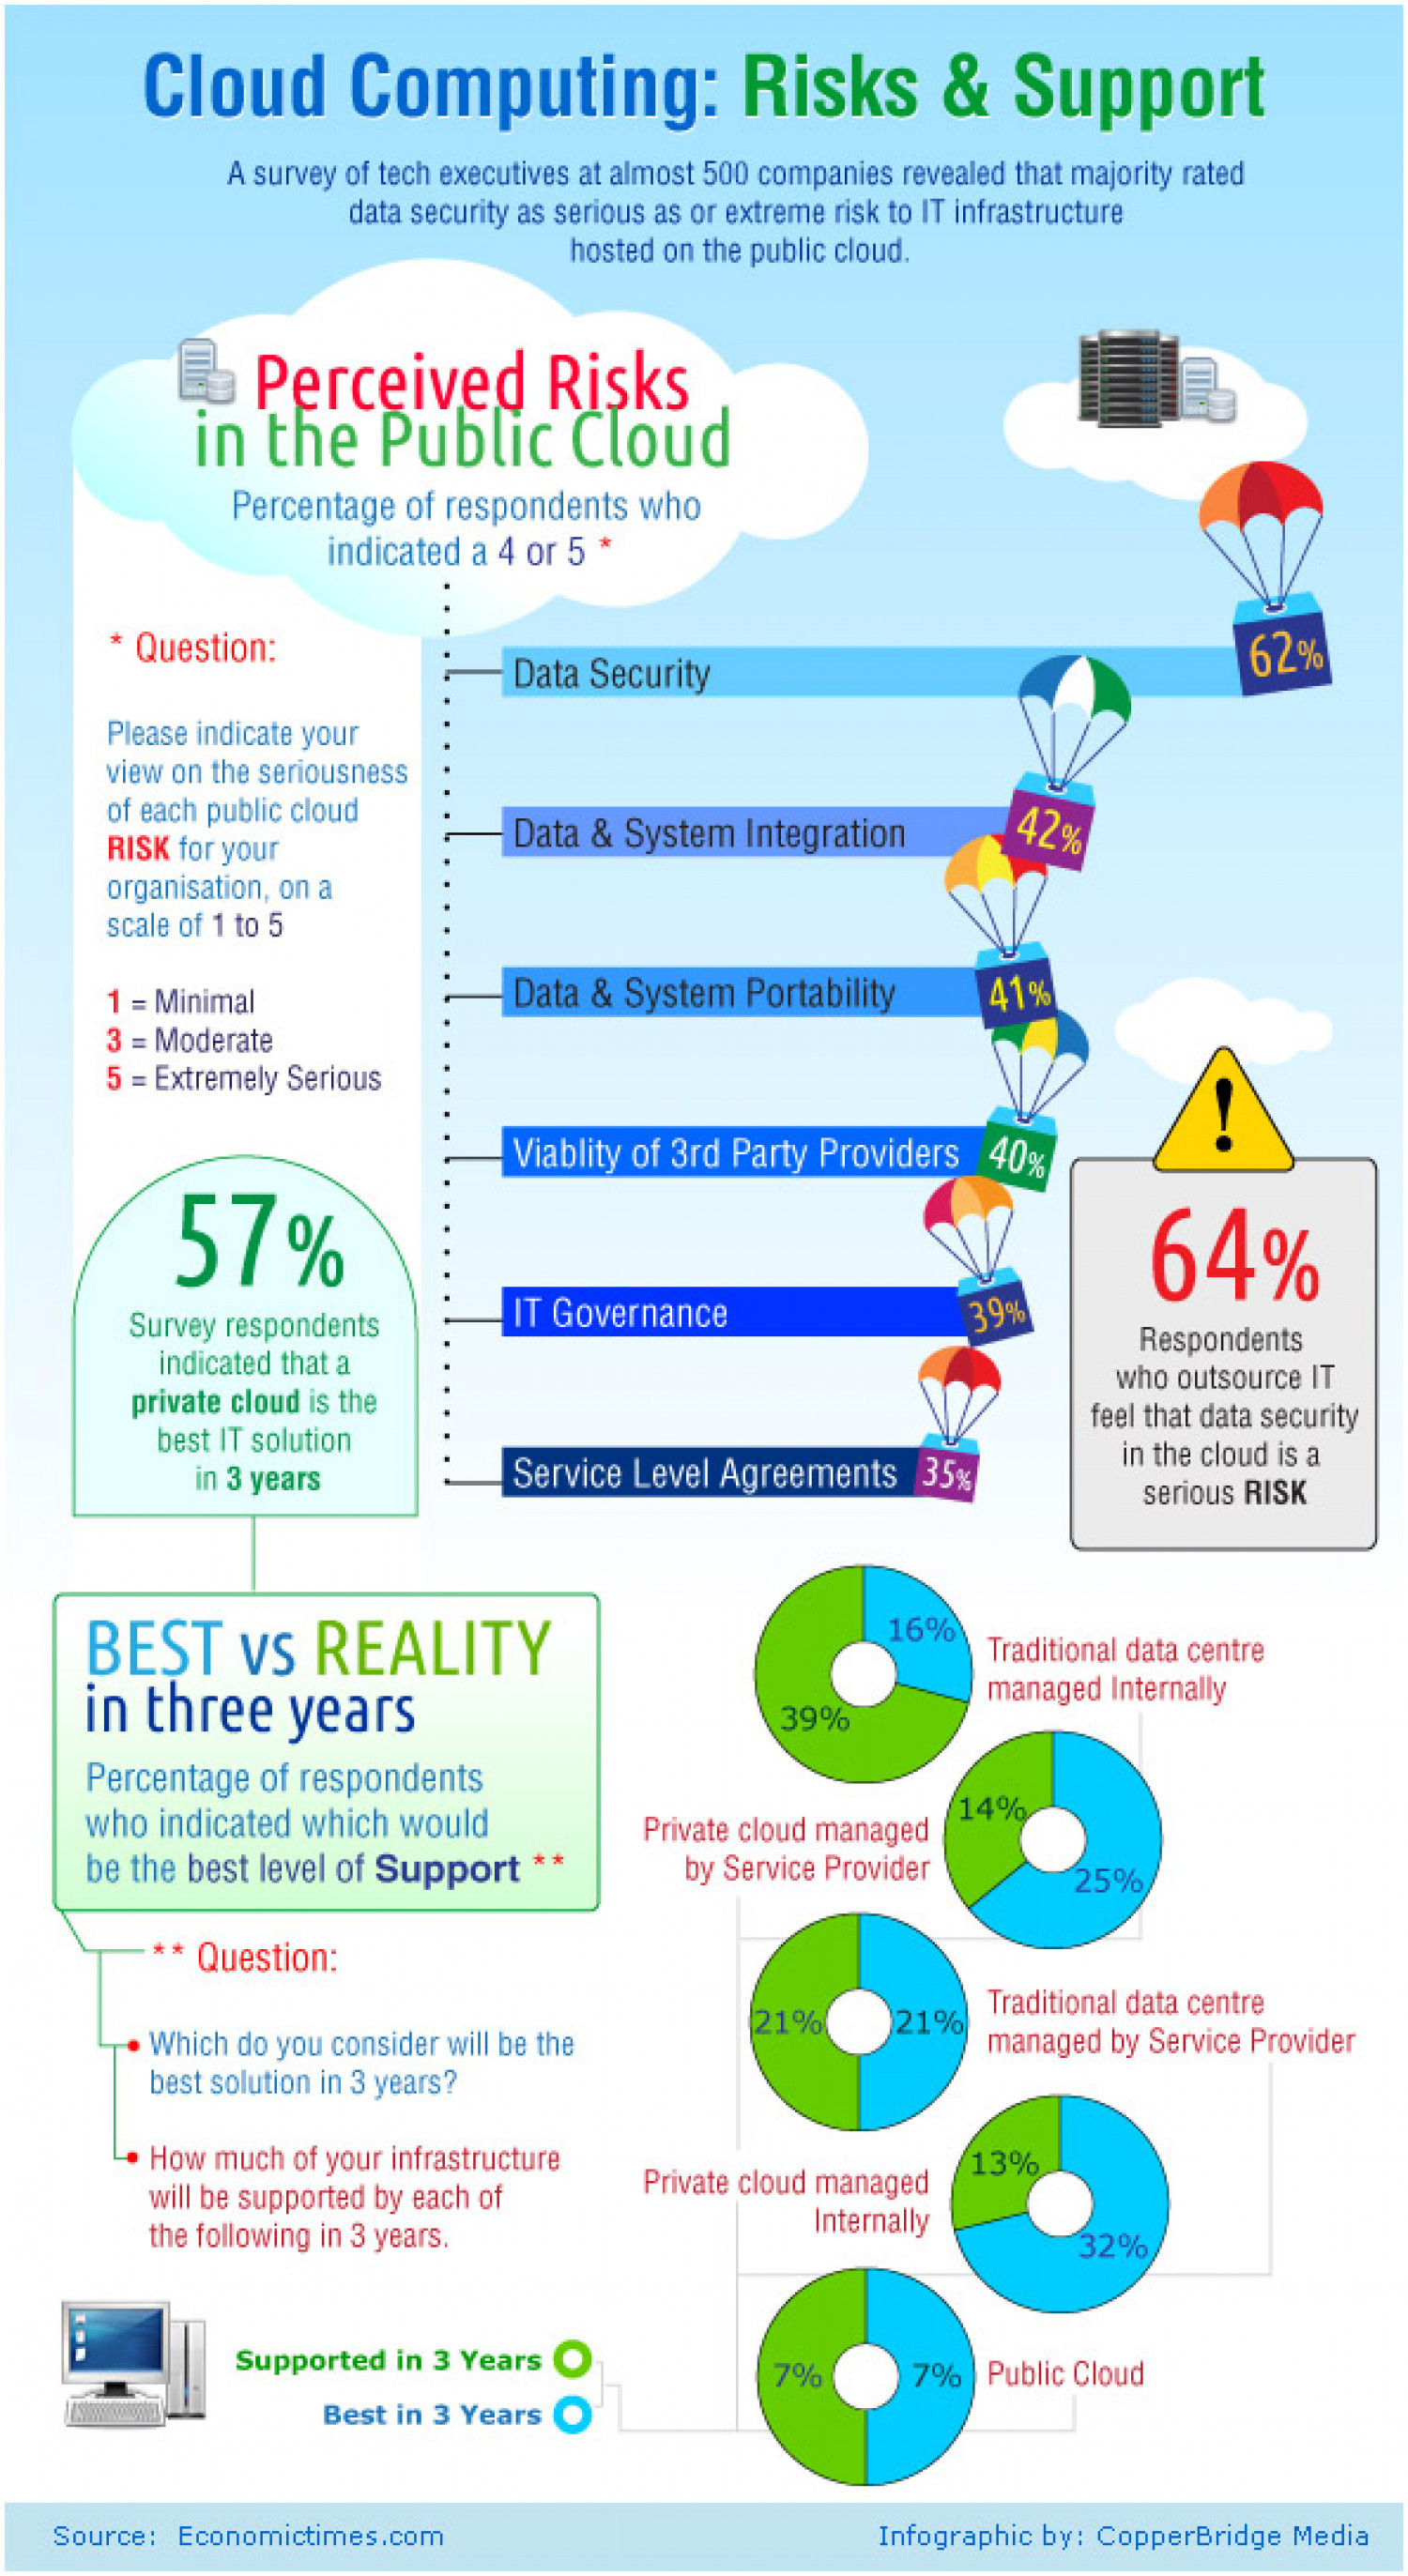 Is cloud computing a risky business? Infographic